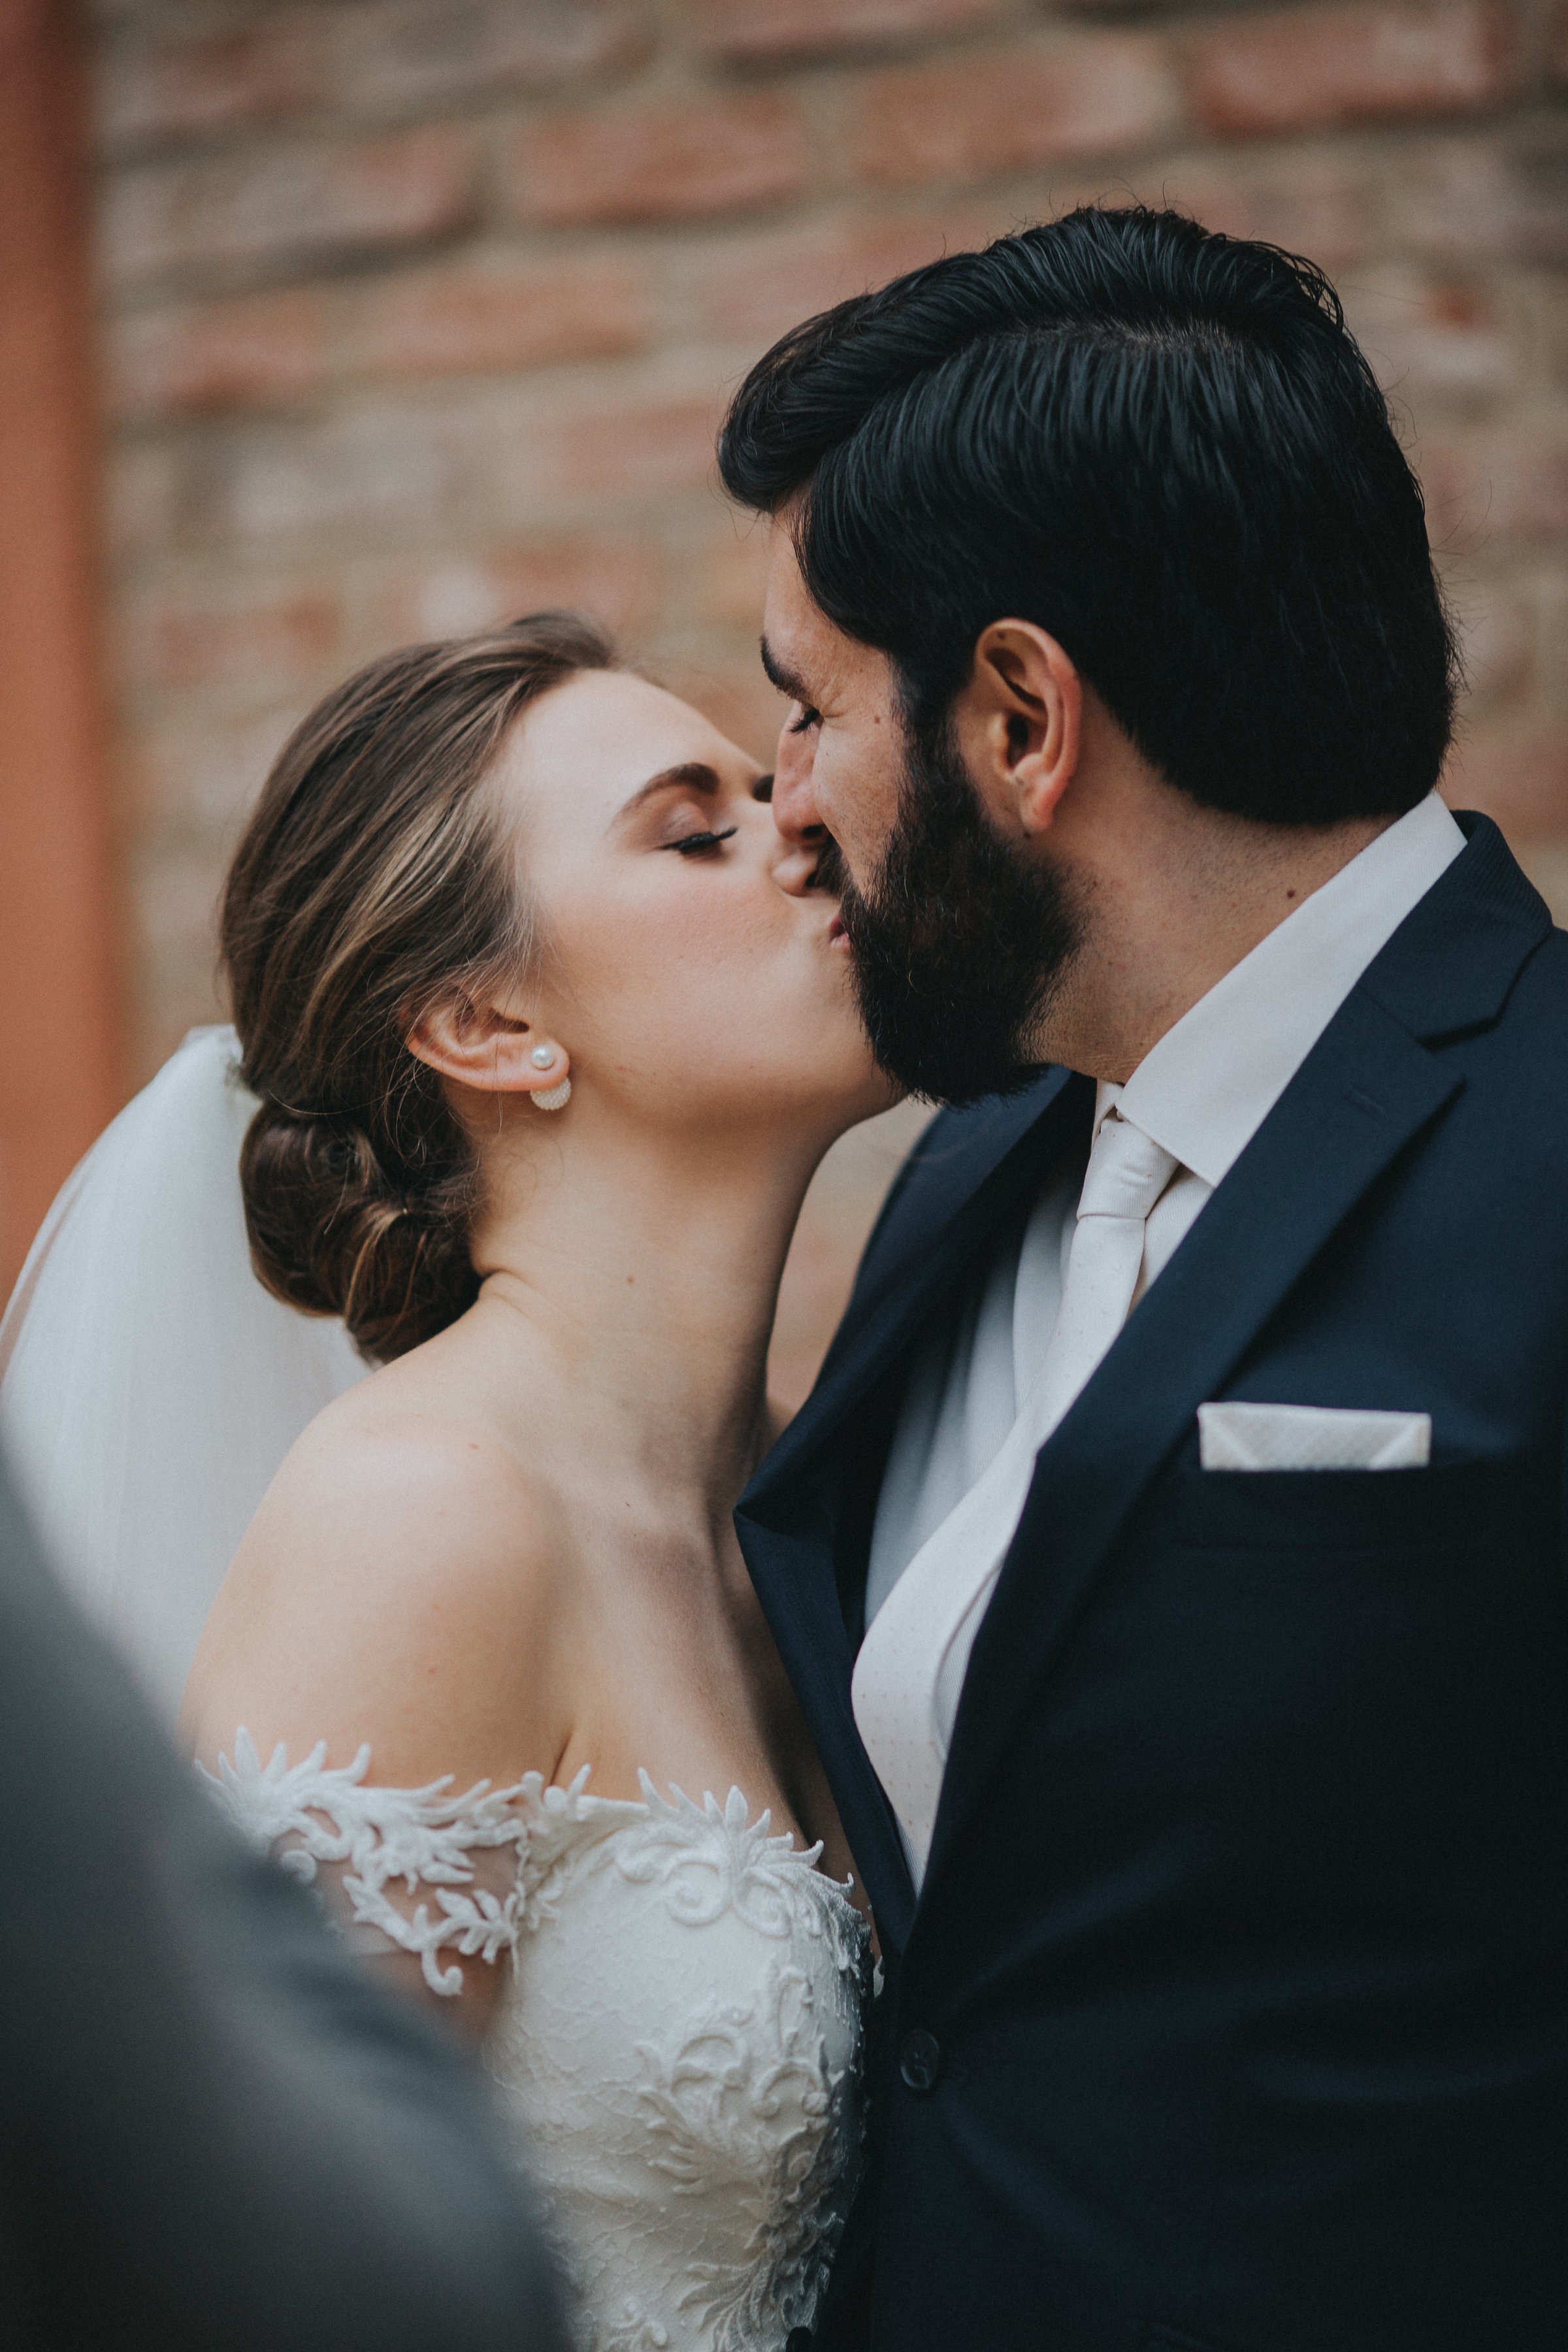 First of many wedding day kisses from the Bride and Groom